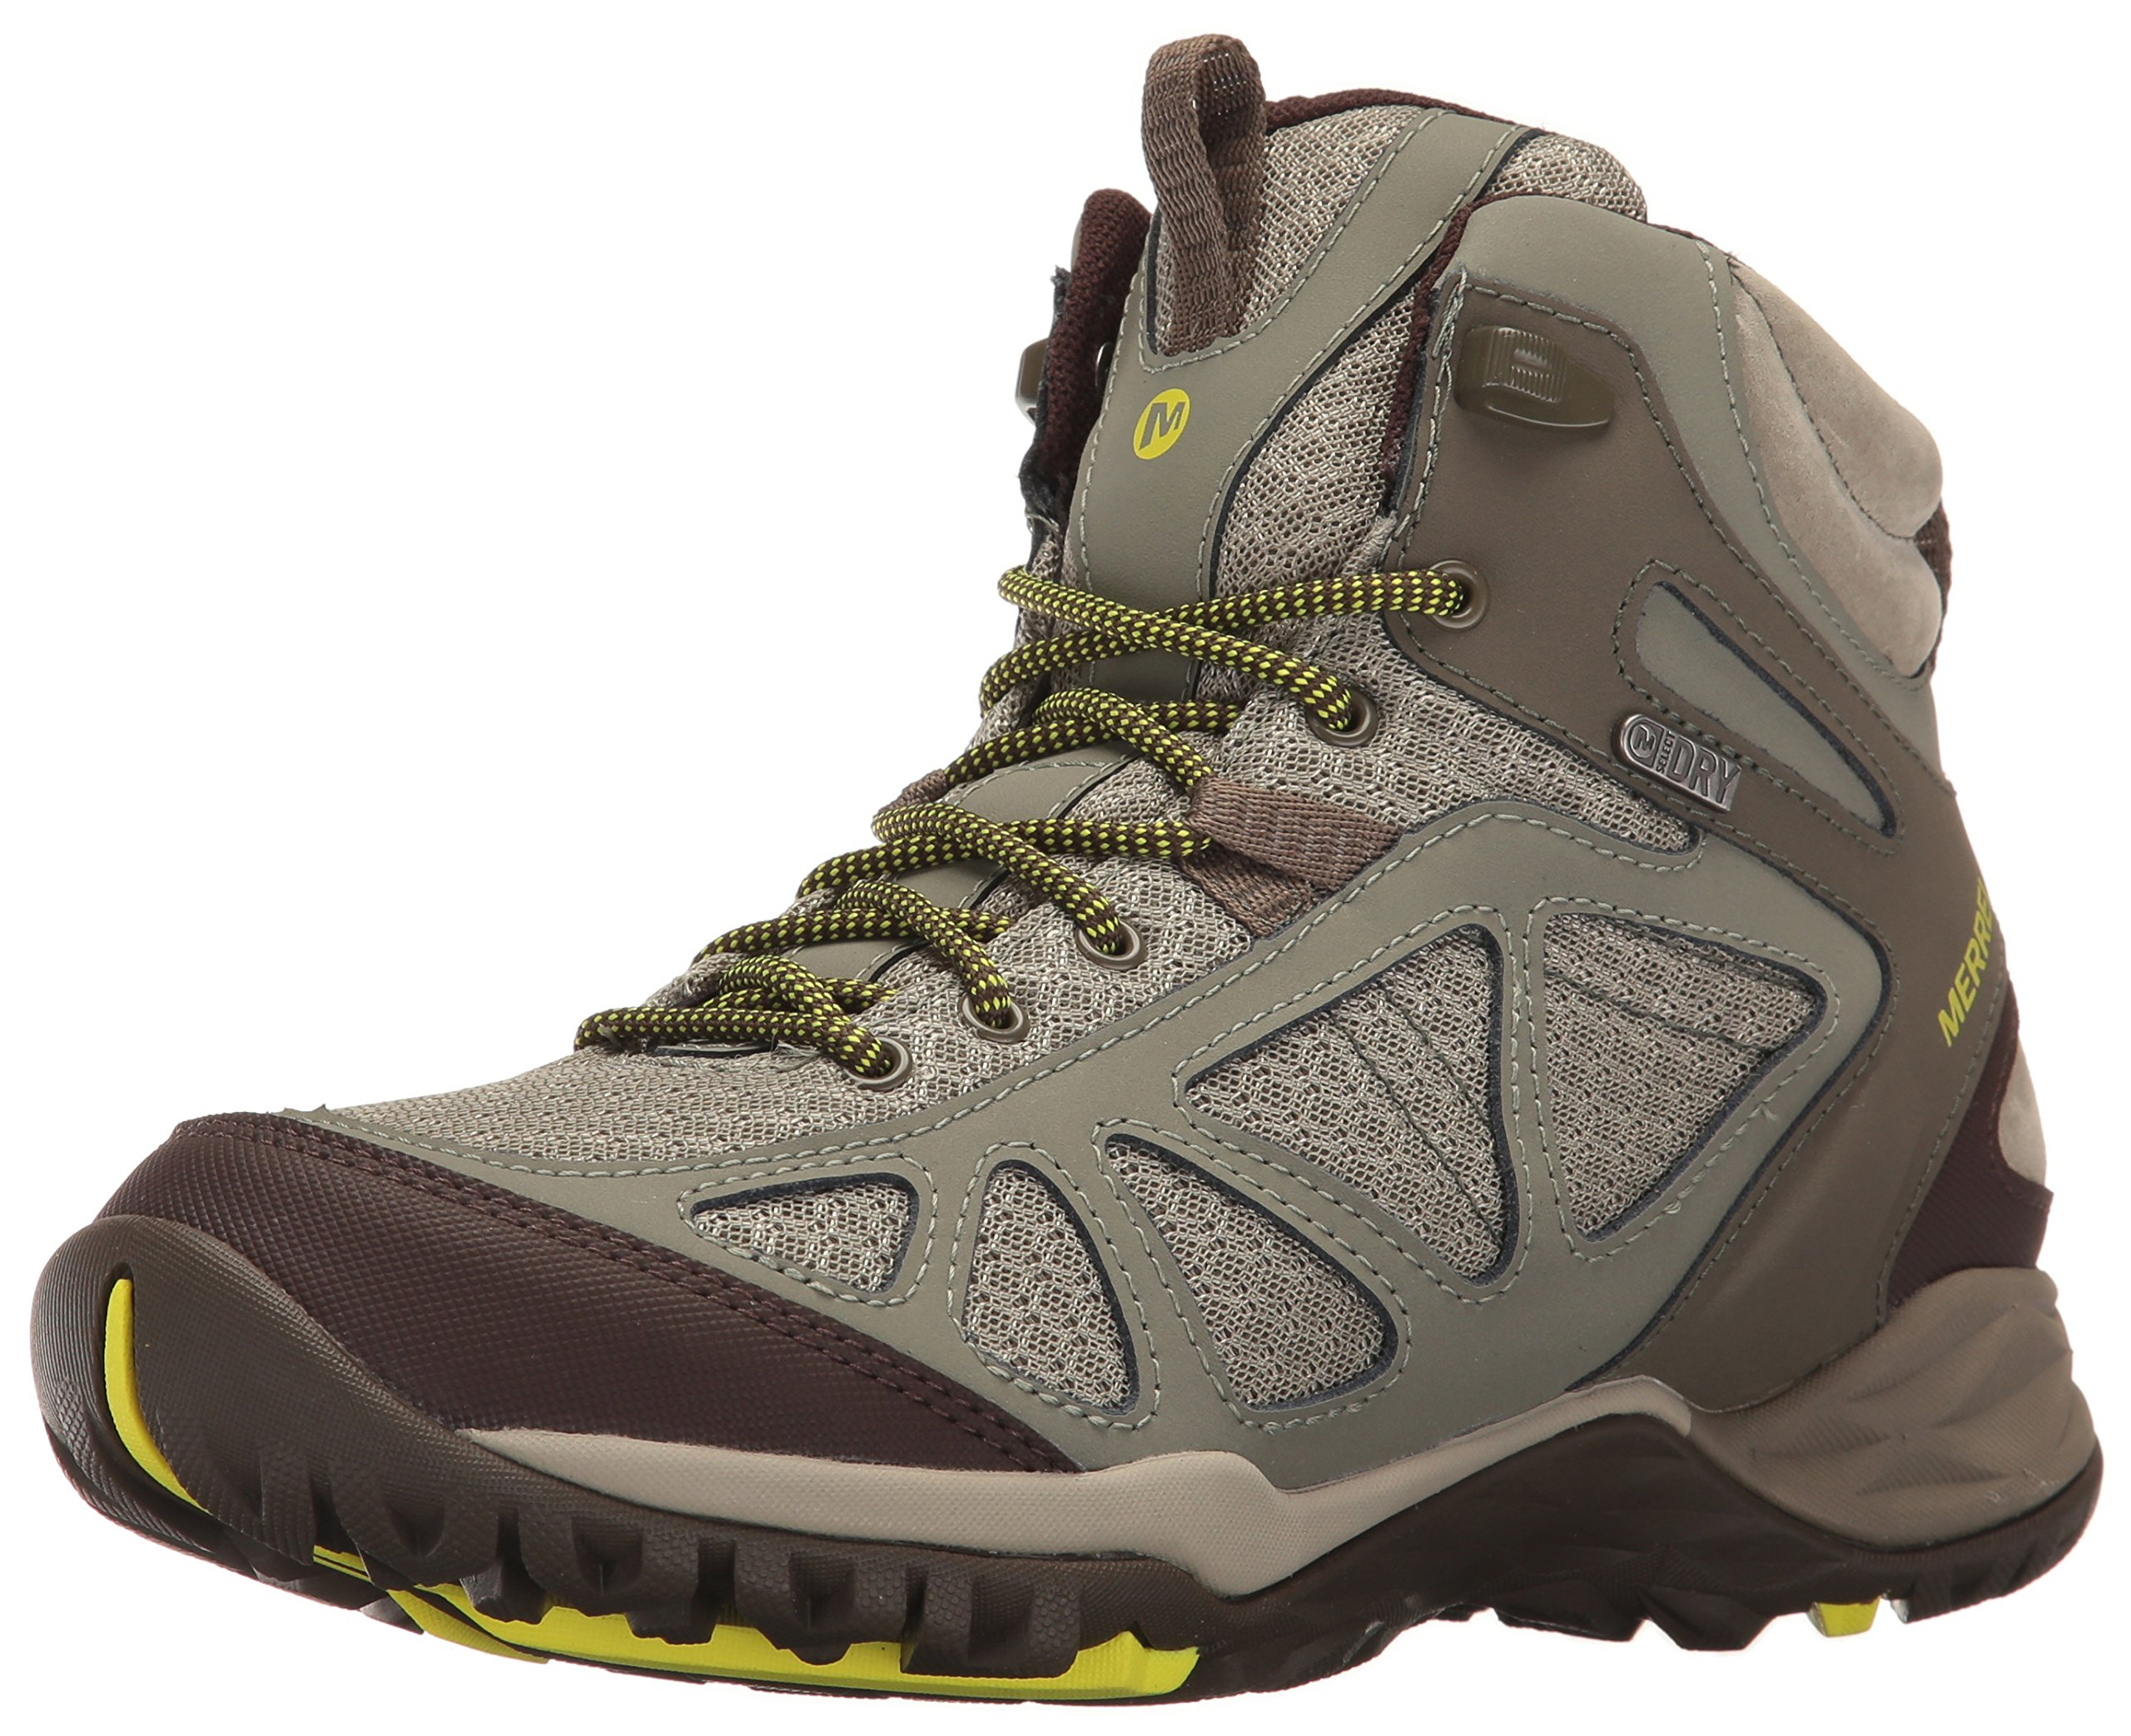 Merrell Women's Siren Sport Q2 Mid Waterproof Hiking Boot, Dusty Olive, 10 M US by Merrell